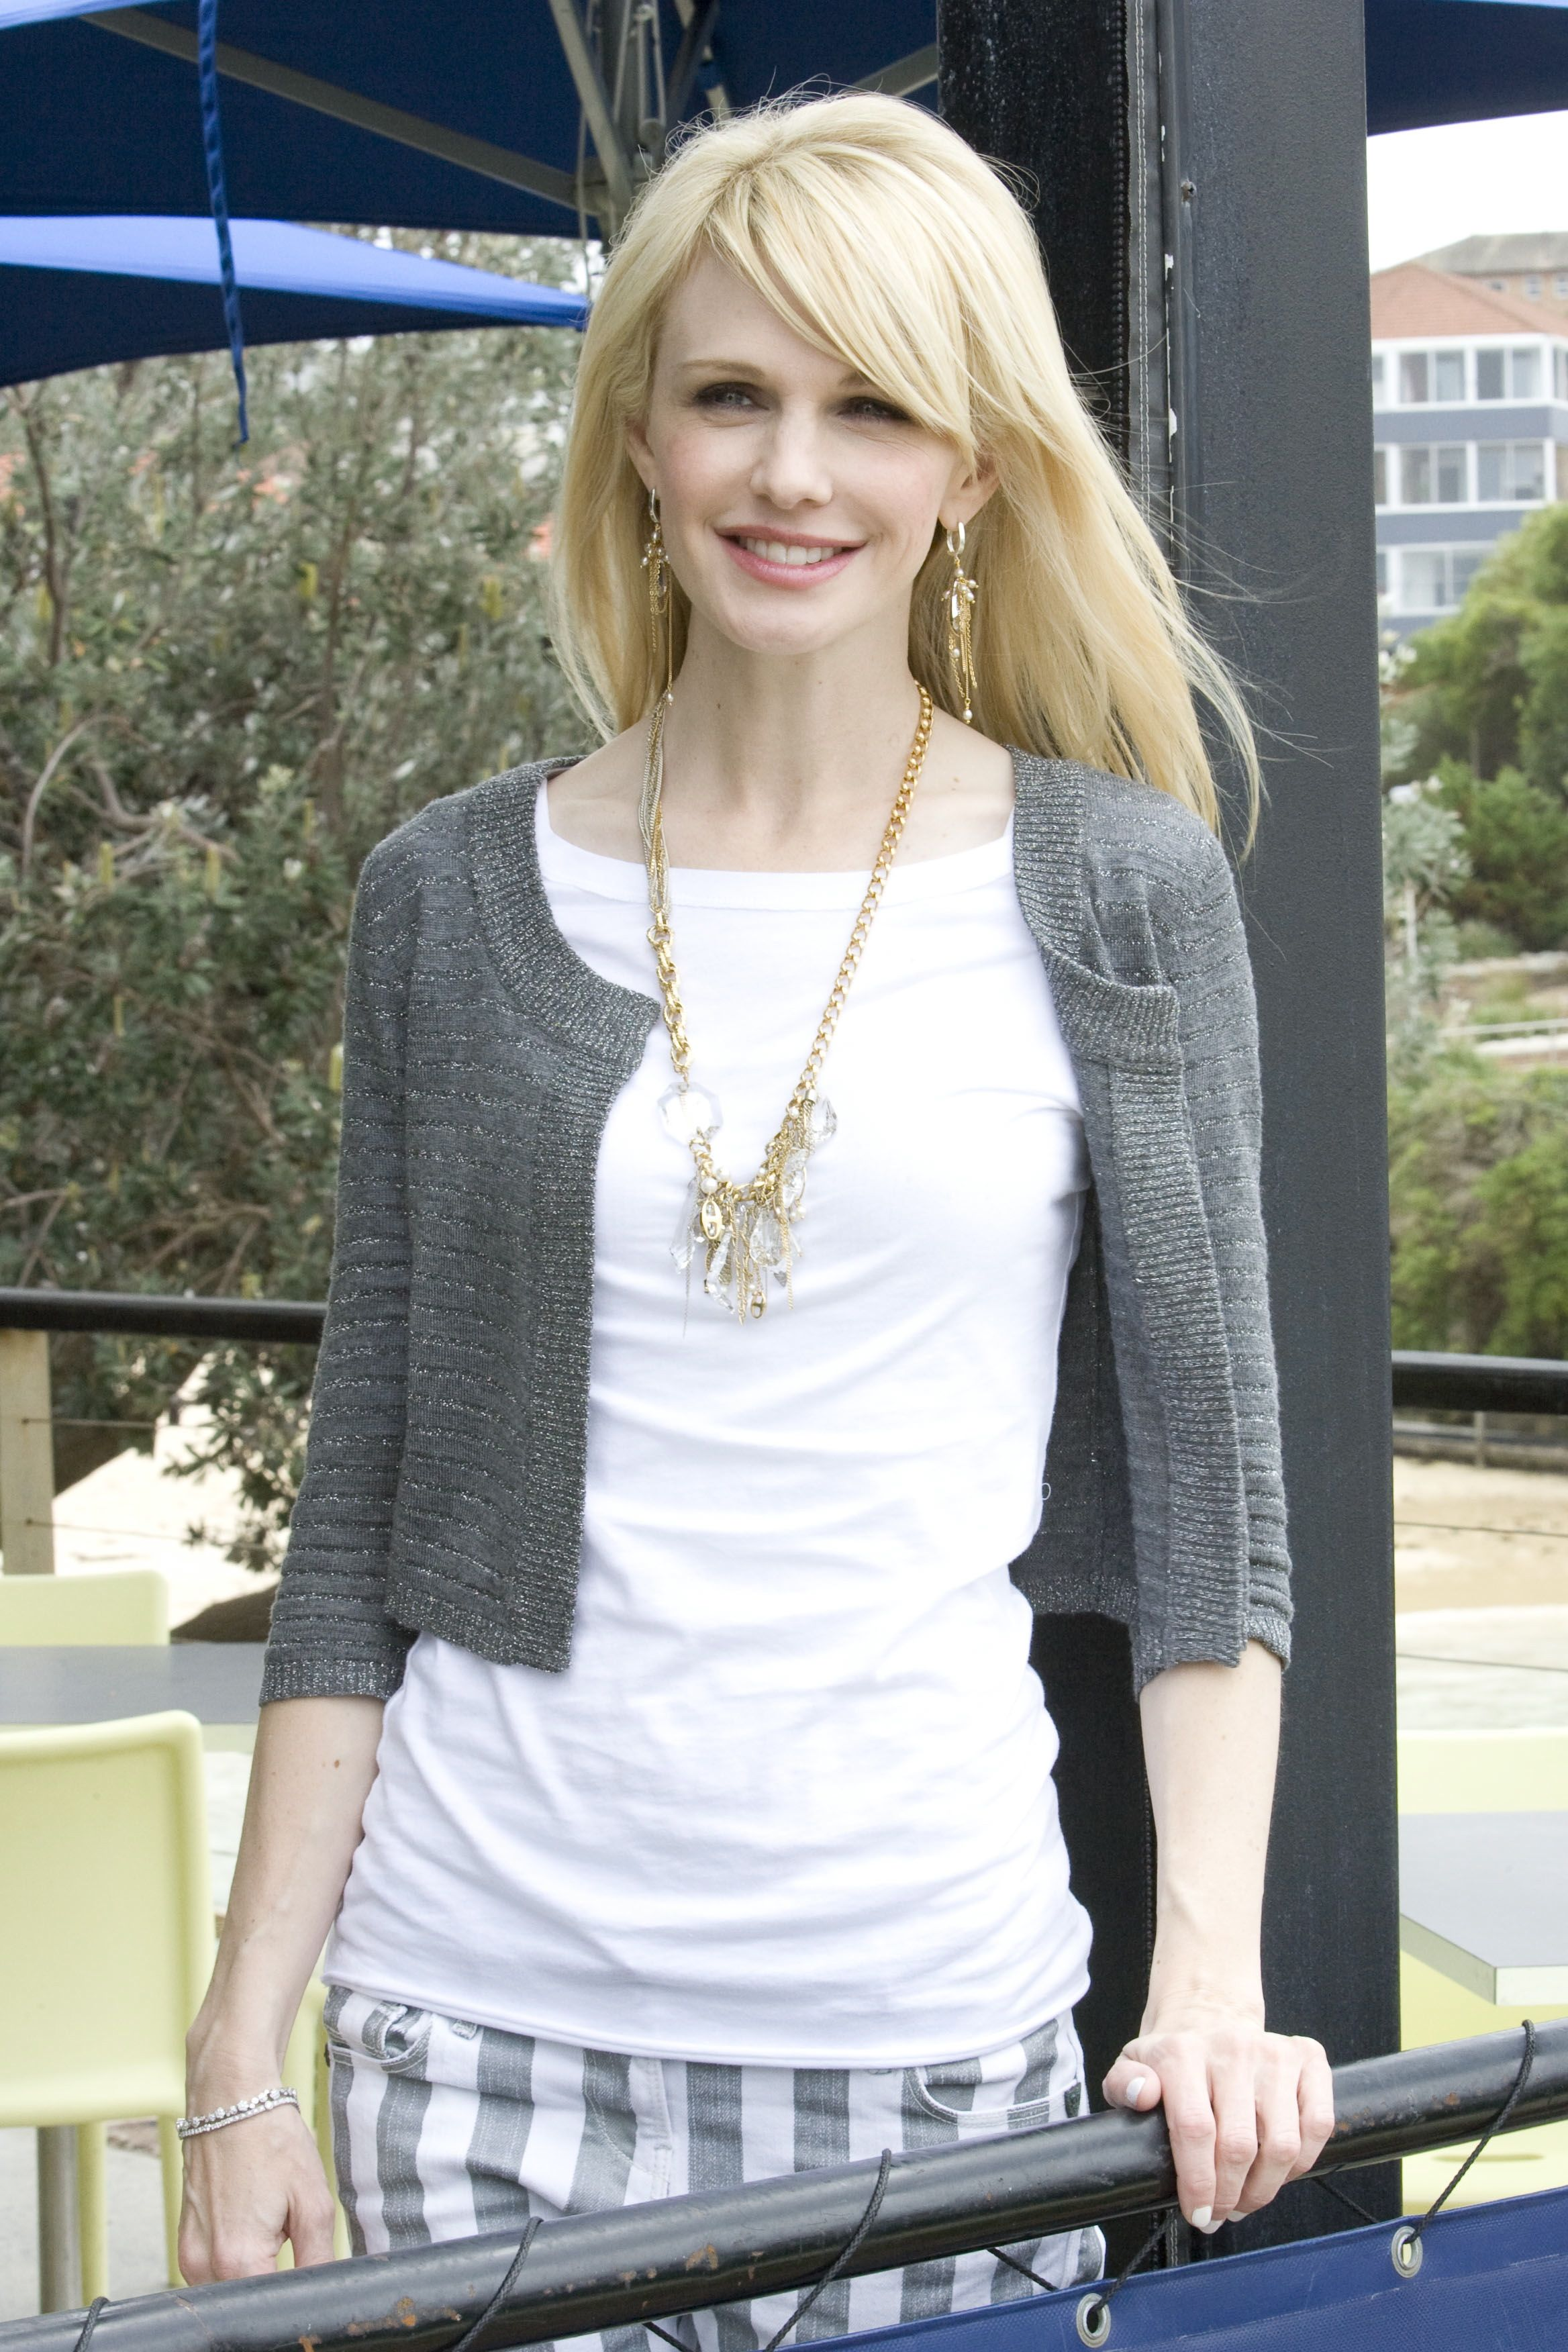 Are not kathryn morris sexy happens